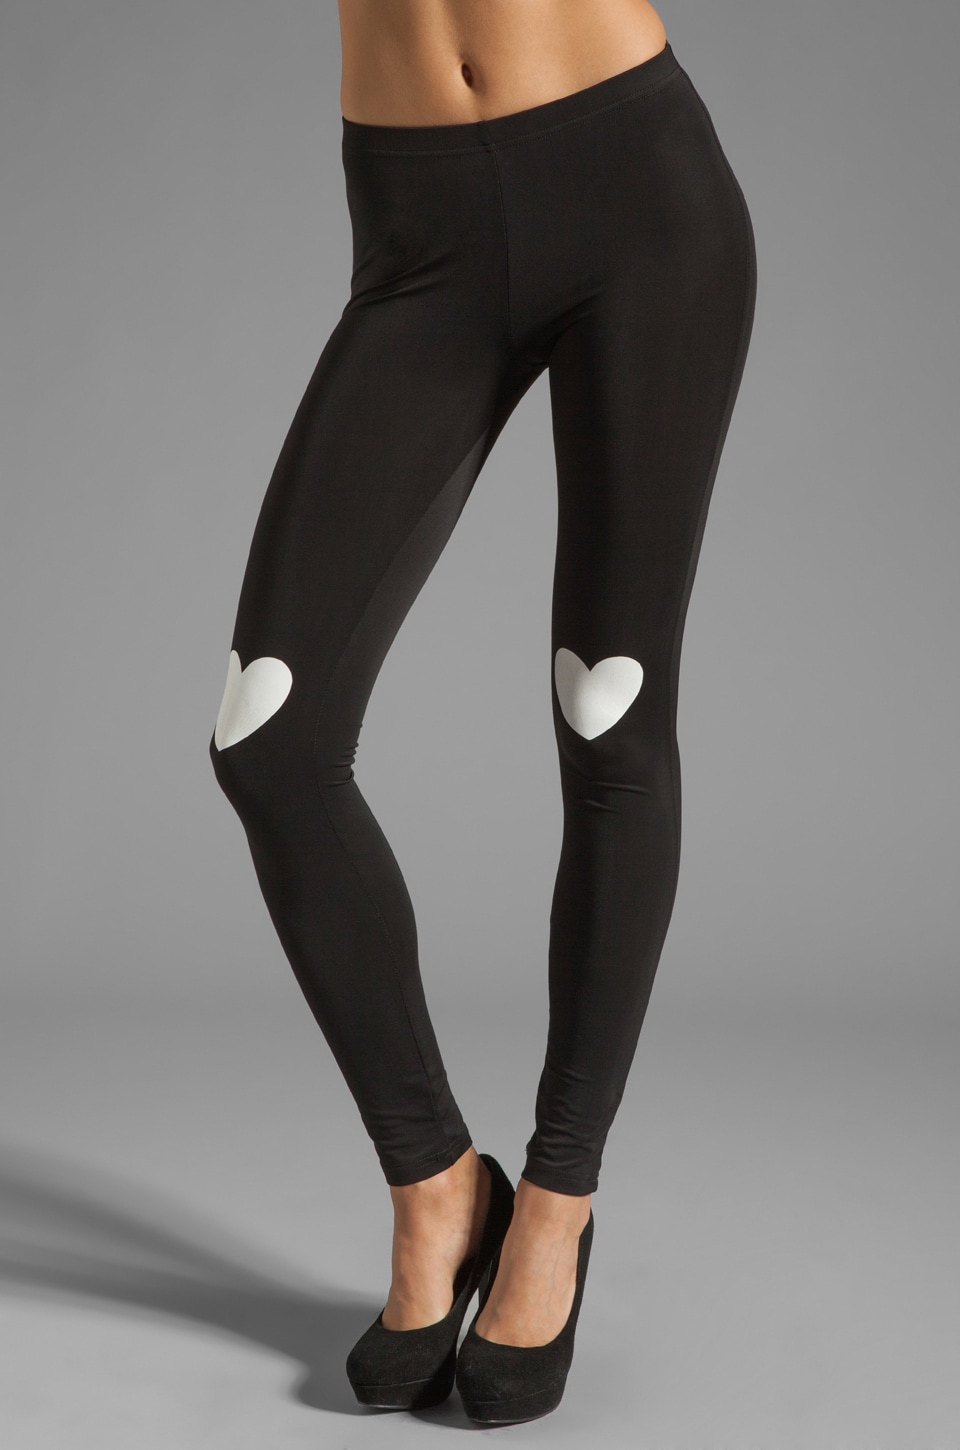 Plush Heart Print Legging in Black/White